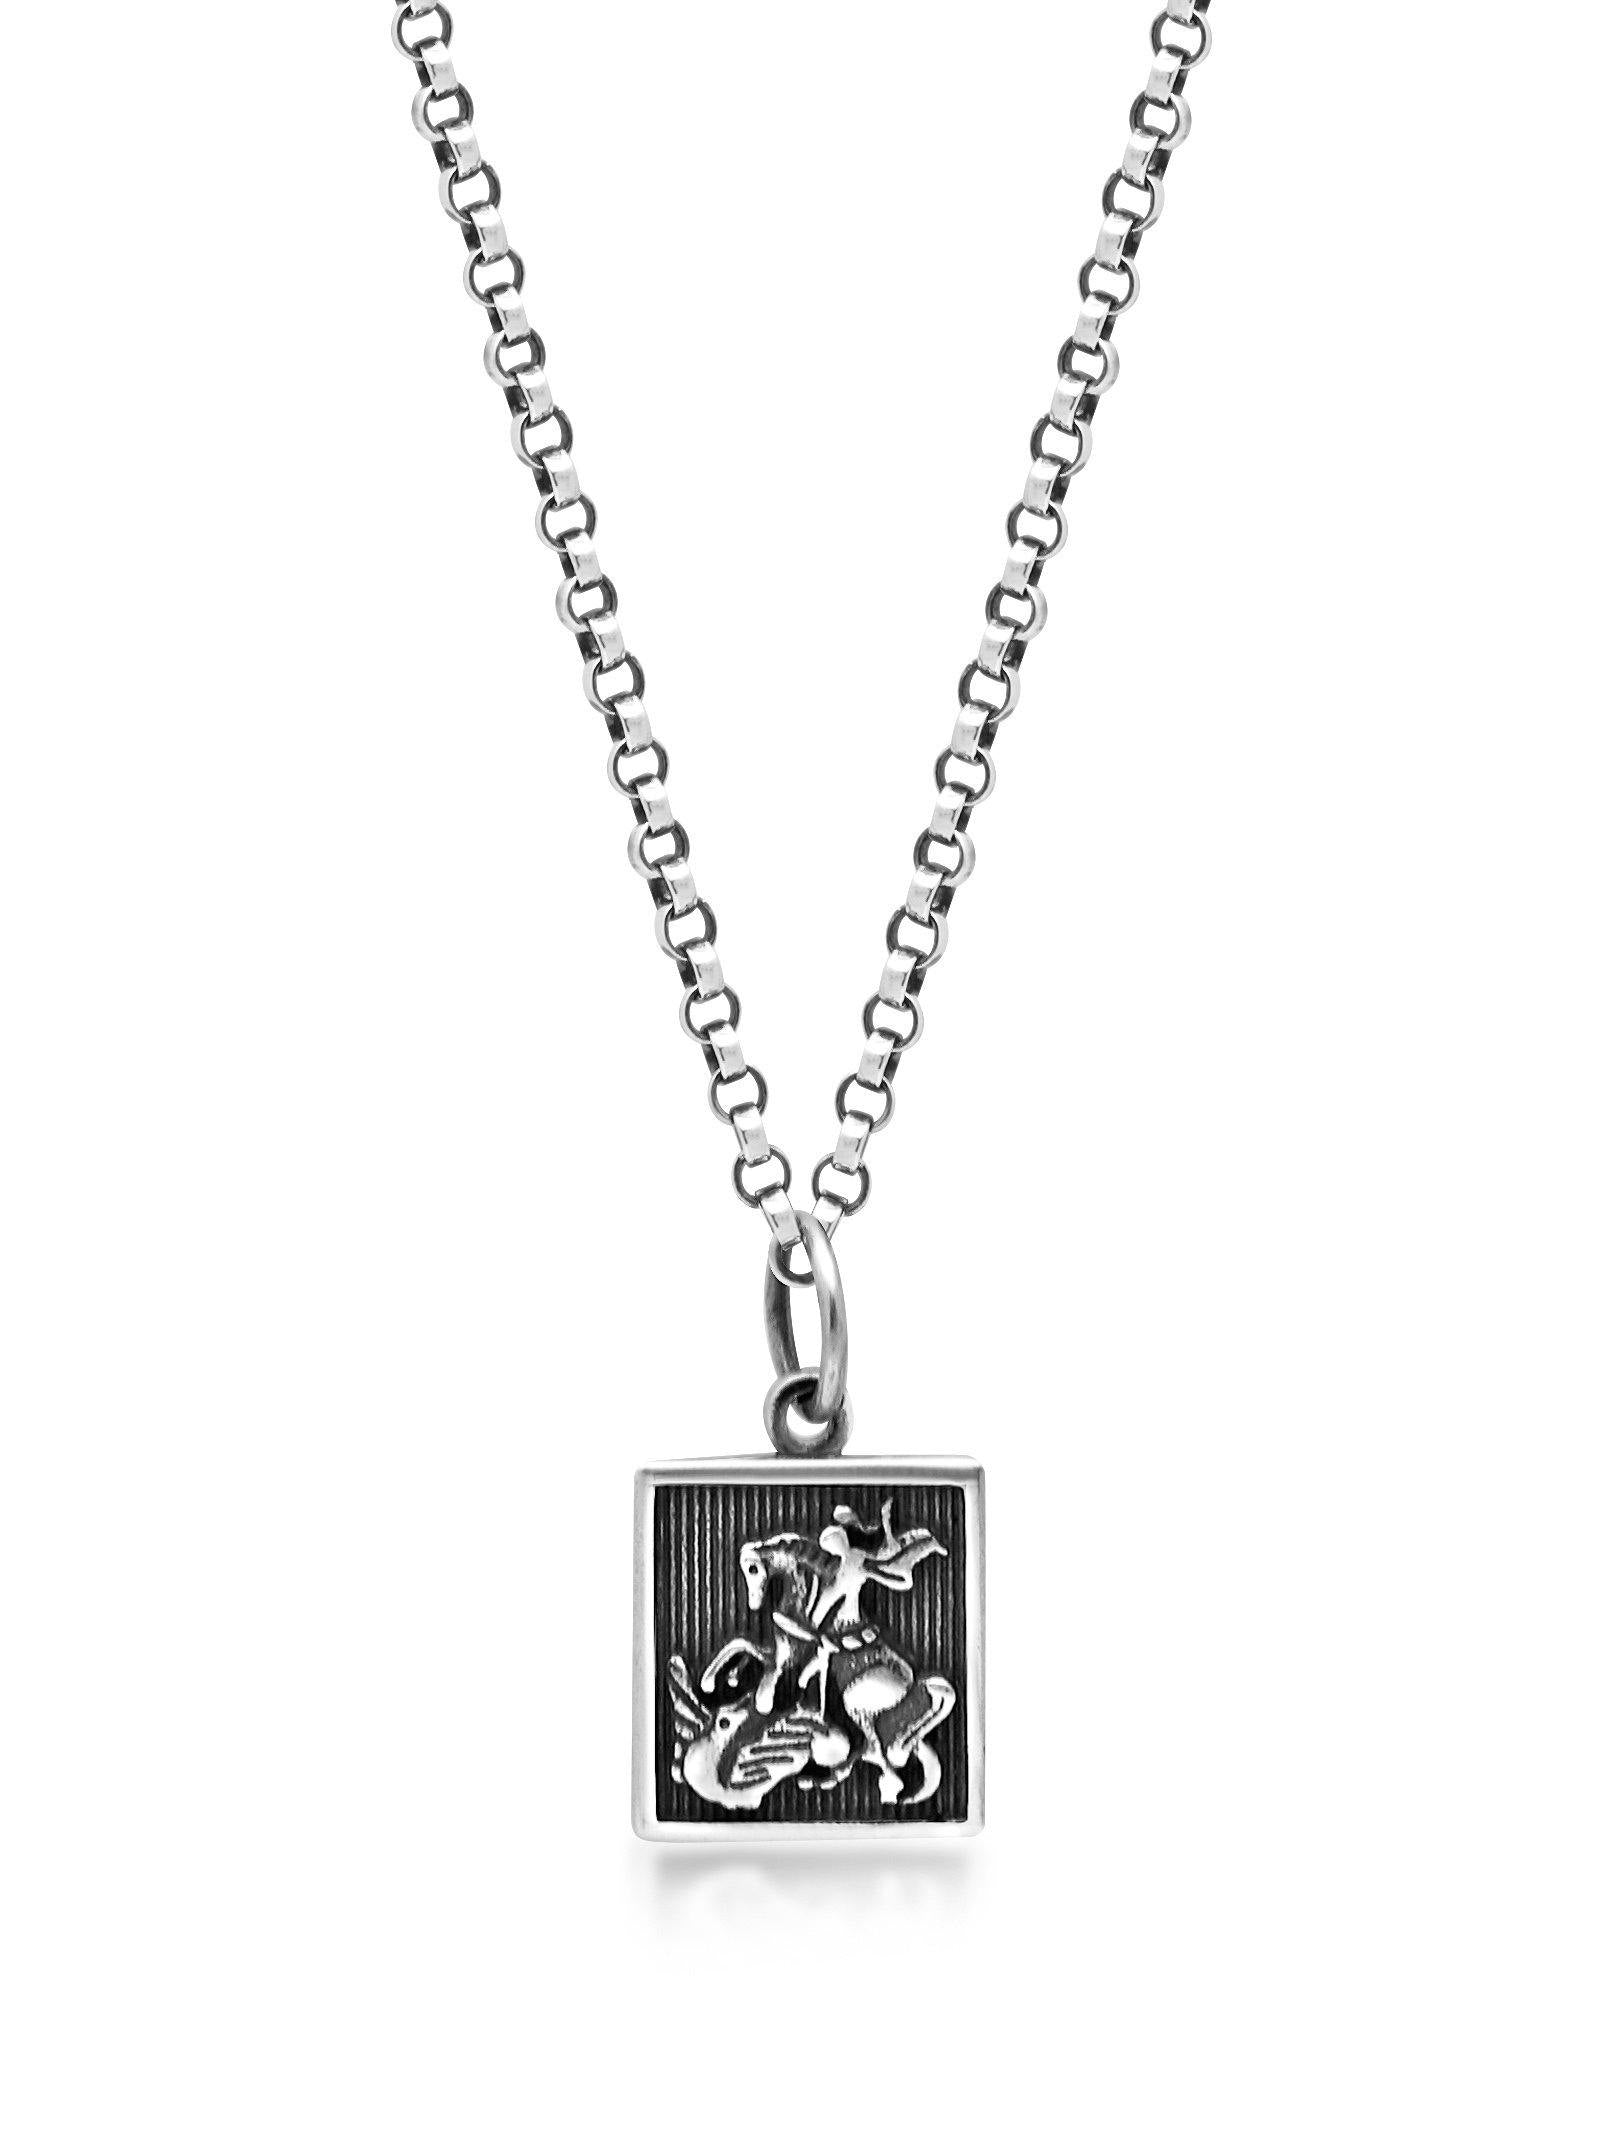 Men's Silver Necklace with Saint George and The Dragon Pendant - Nialaya Jewelry